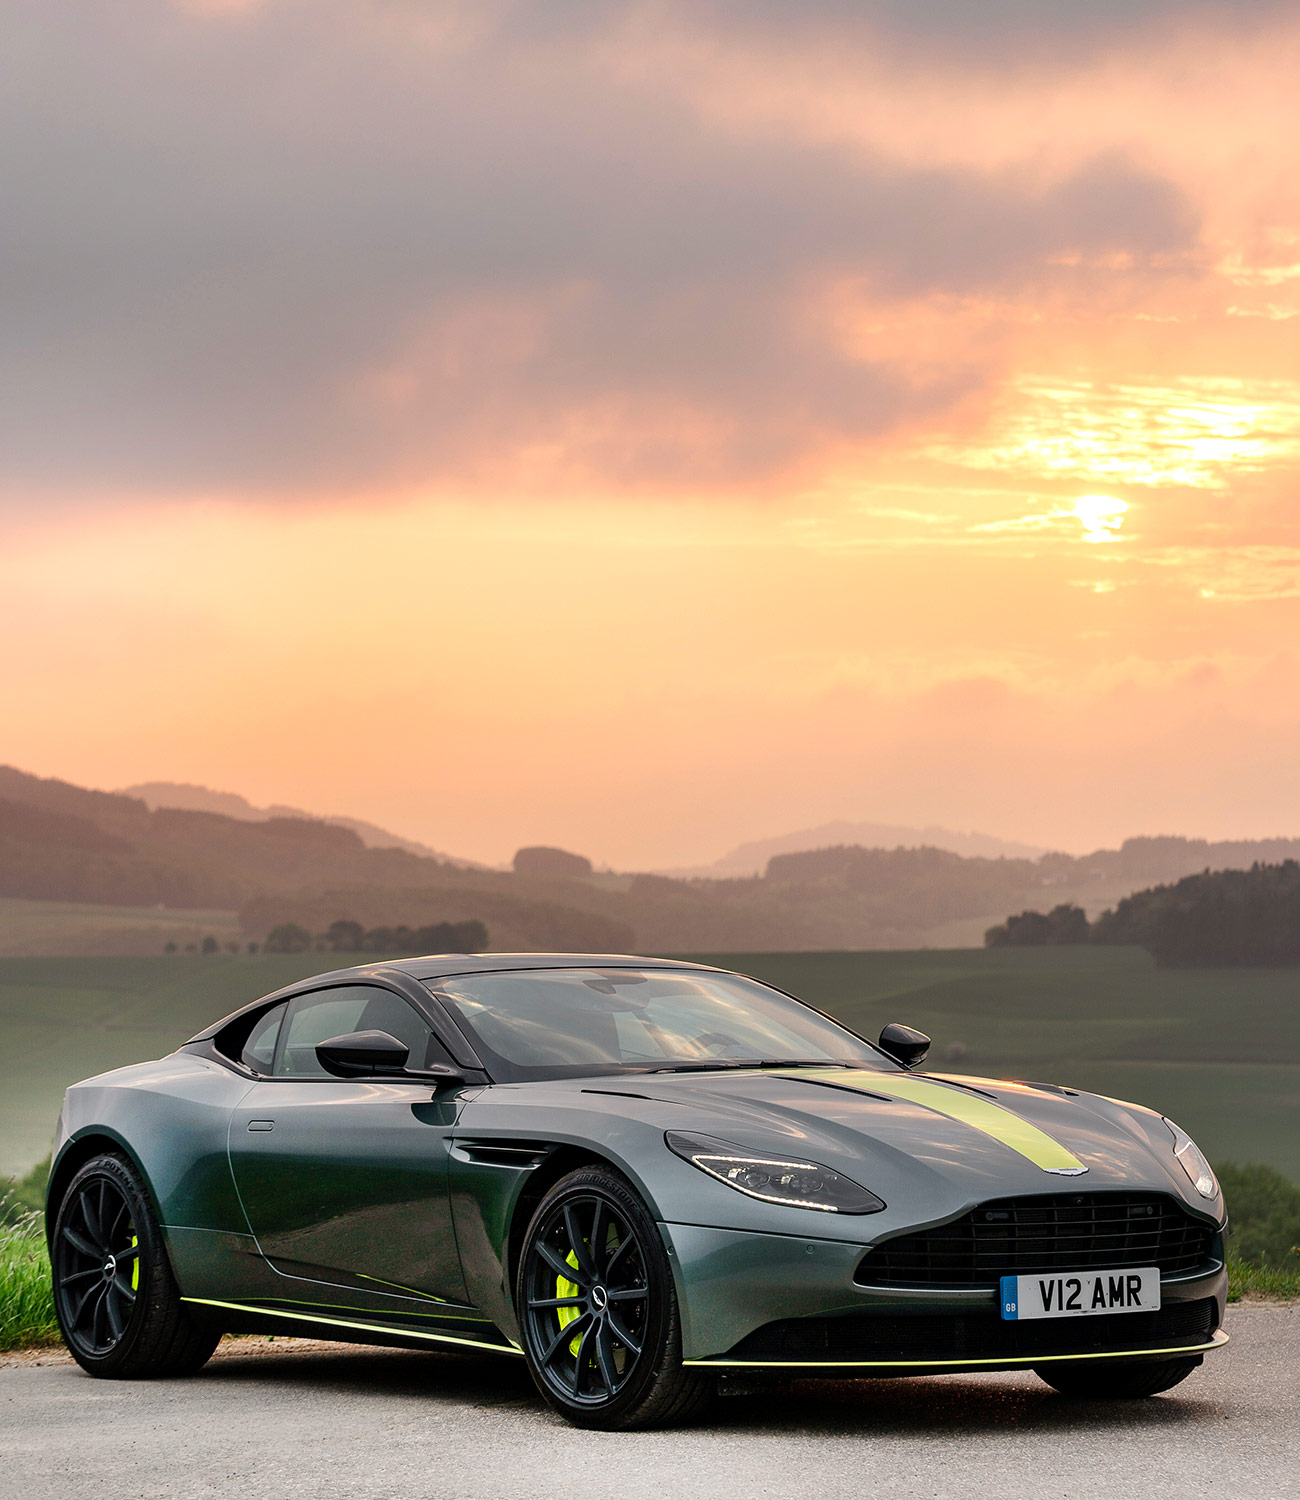 2019 Aston Martin Db11 Amr Review Used Car Reviews Cars